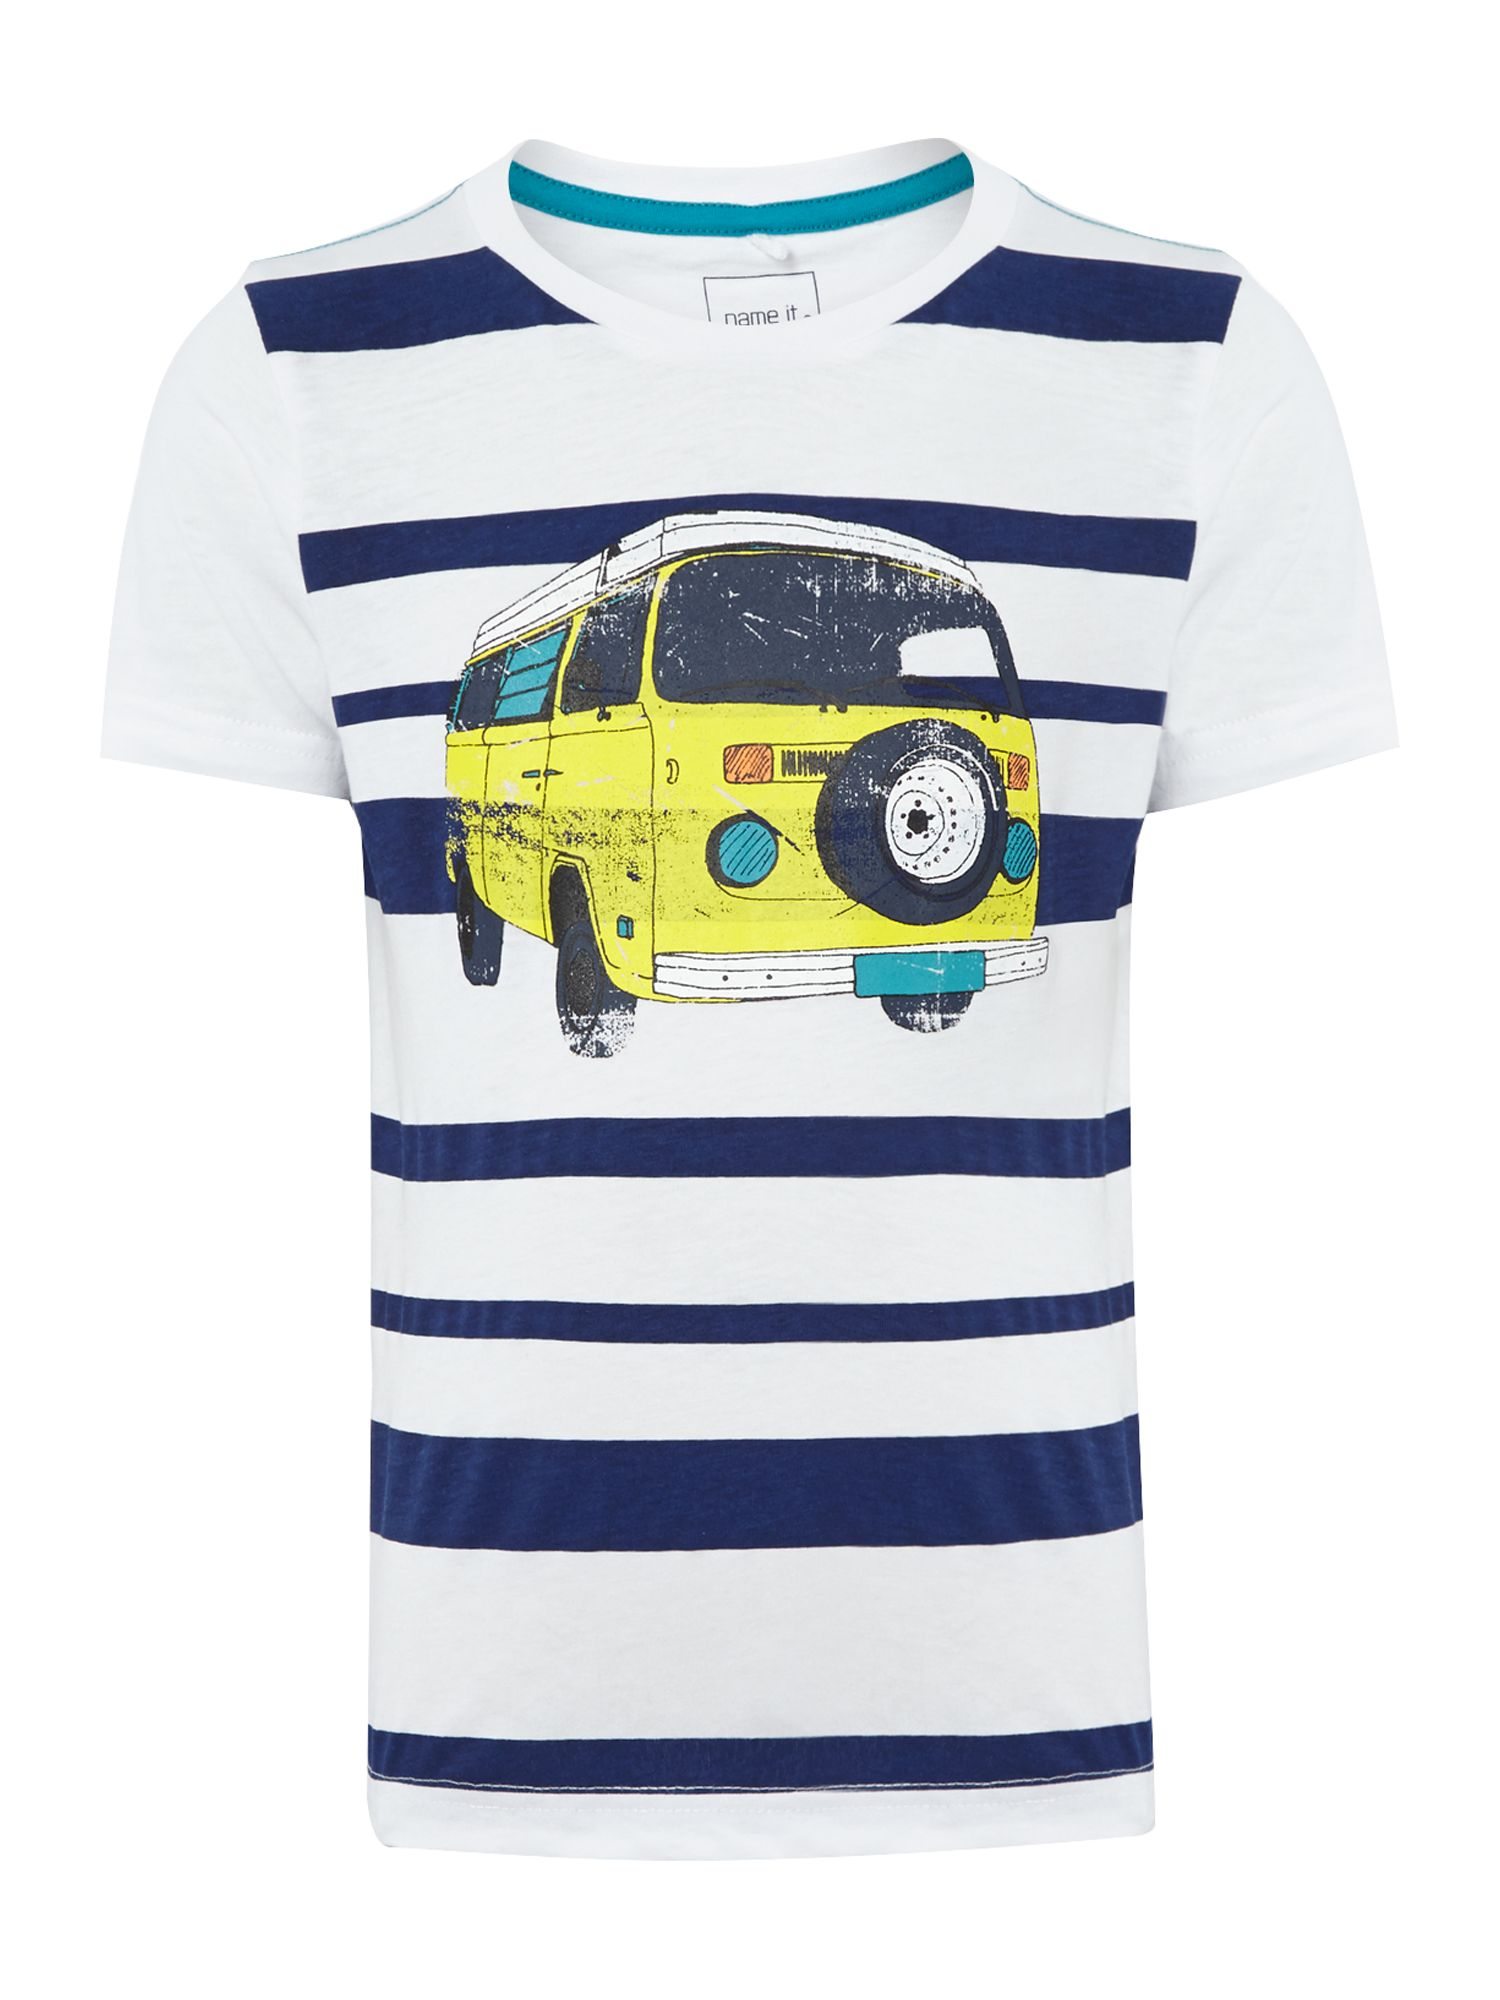 Boys stripe camper t-shirt